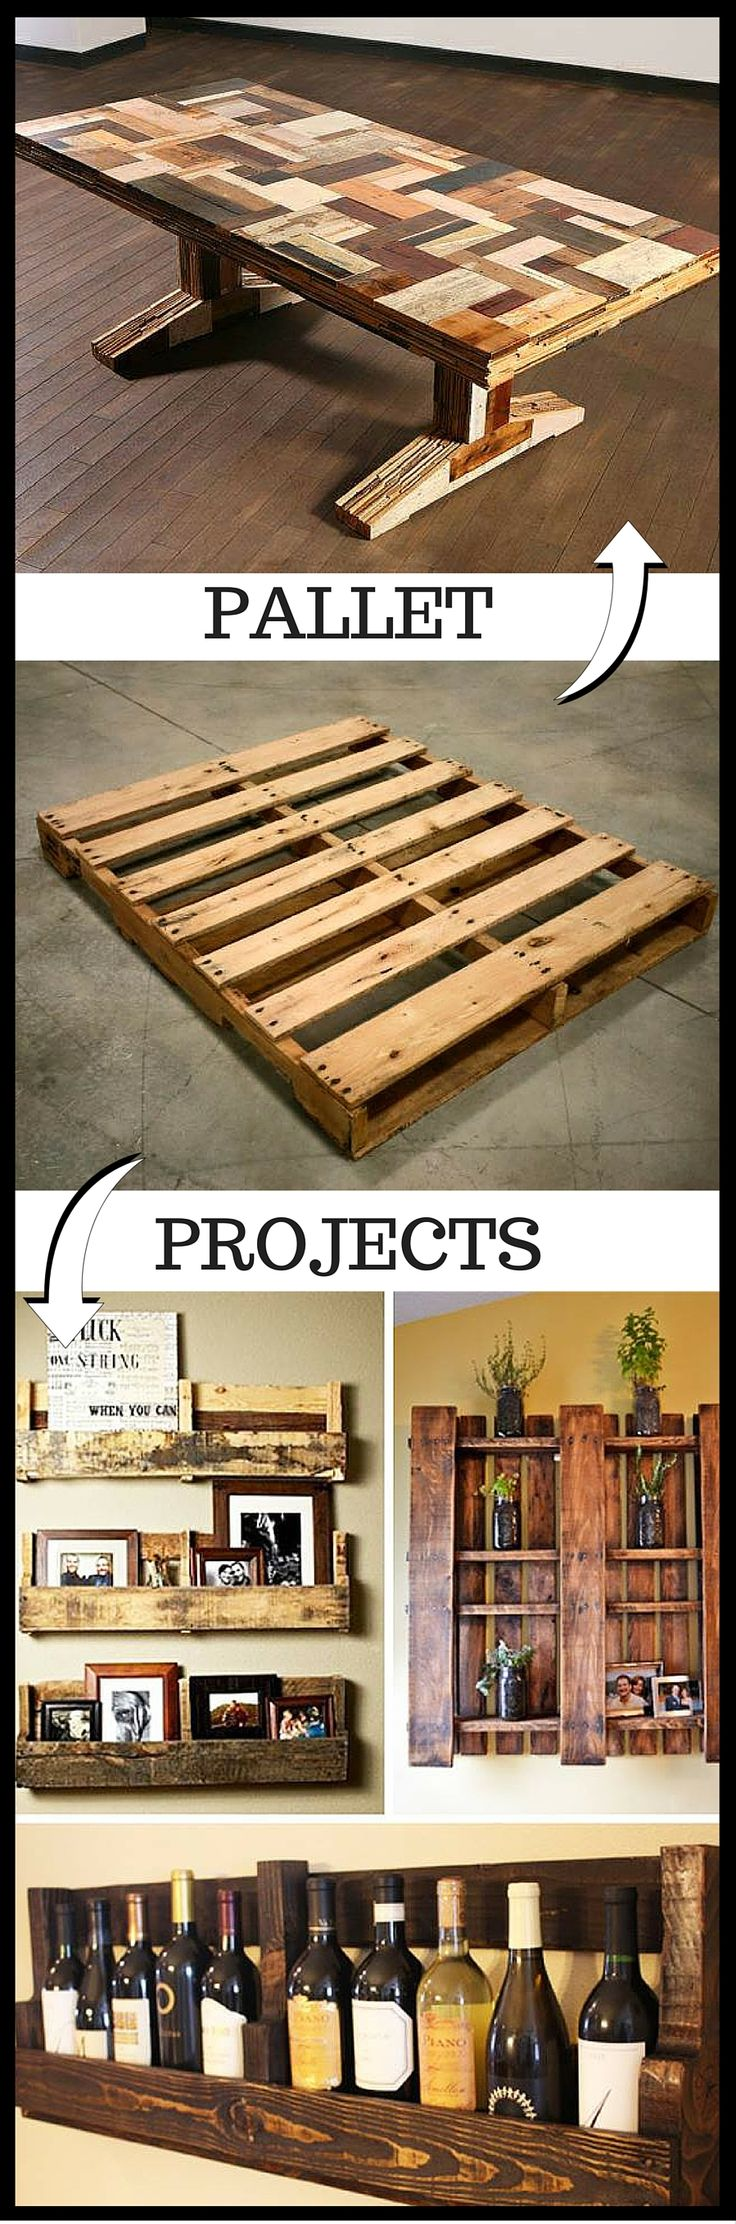 Best 25 ways to recycle ideas on pinterest diy for Ways to recycle wood